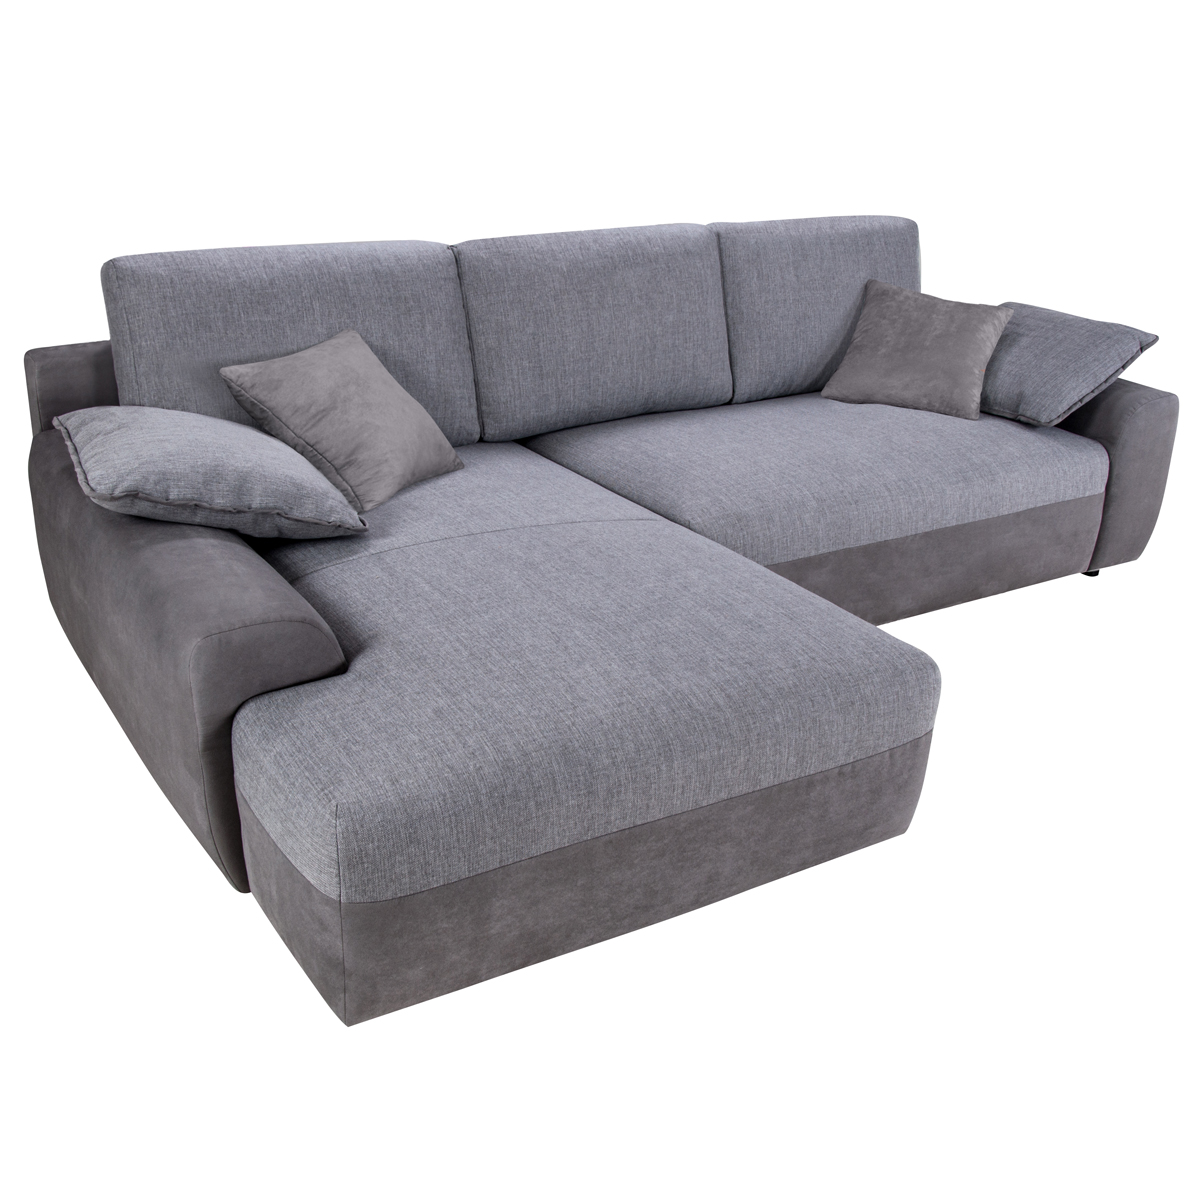 Wohnlandschaft hastings grau sofa ecksofa mit bettfunktion for Sofa mit bettfunktion